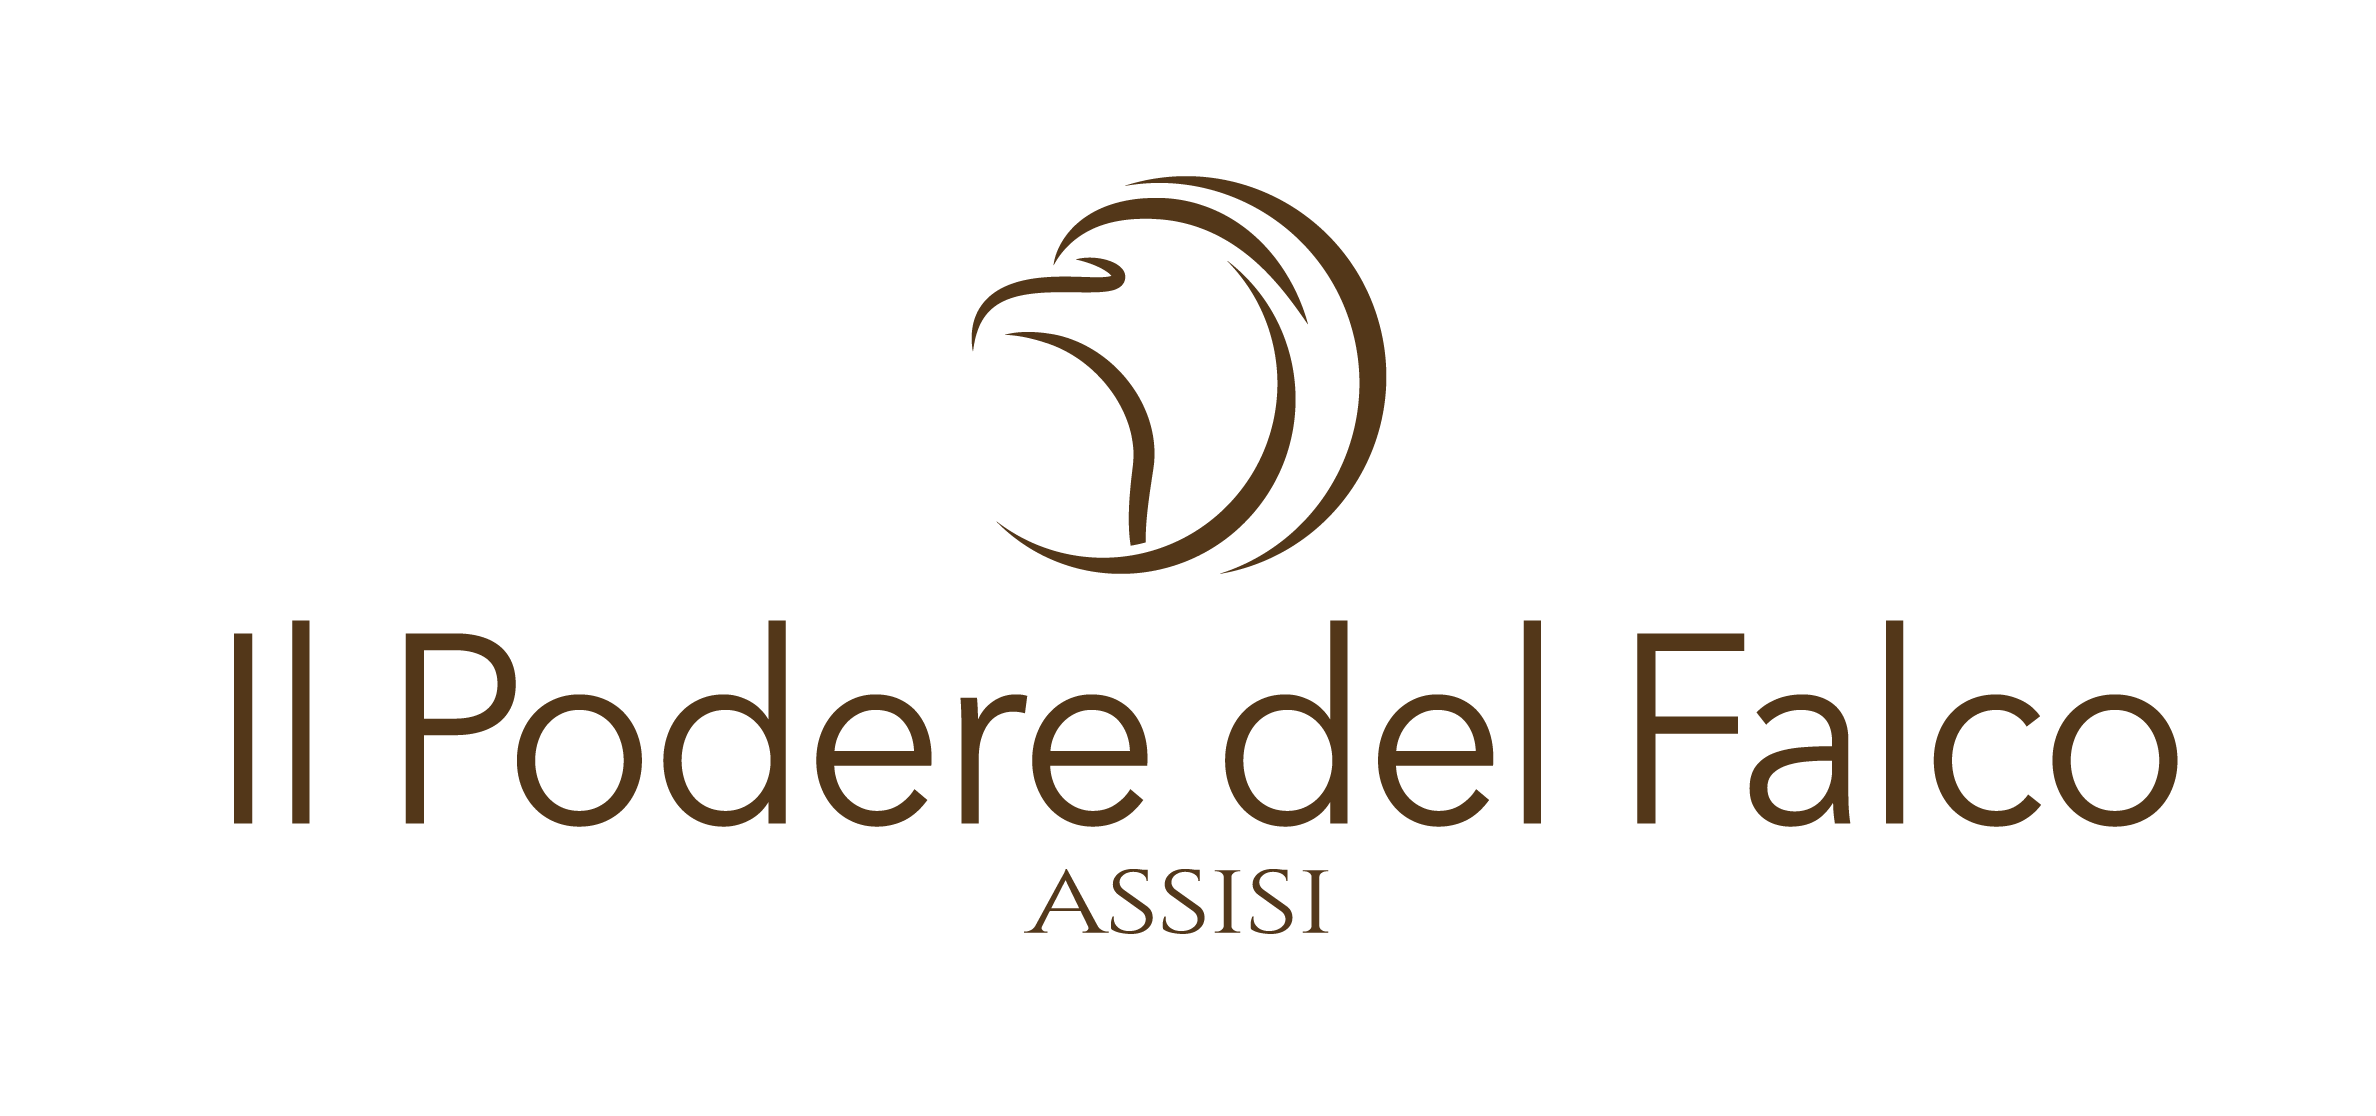 Logo dell'Podere del falco a Assisi